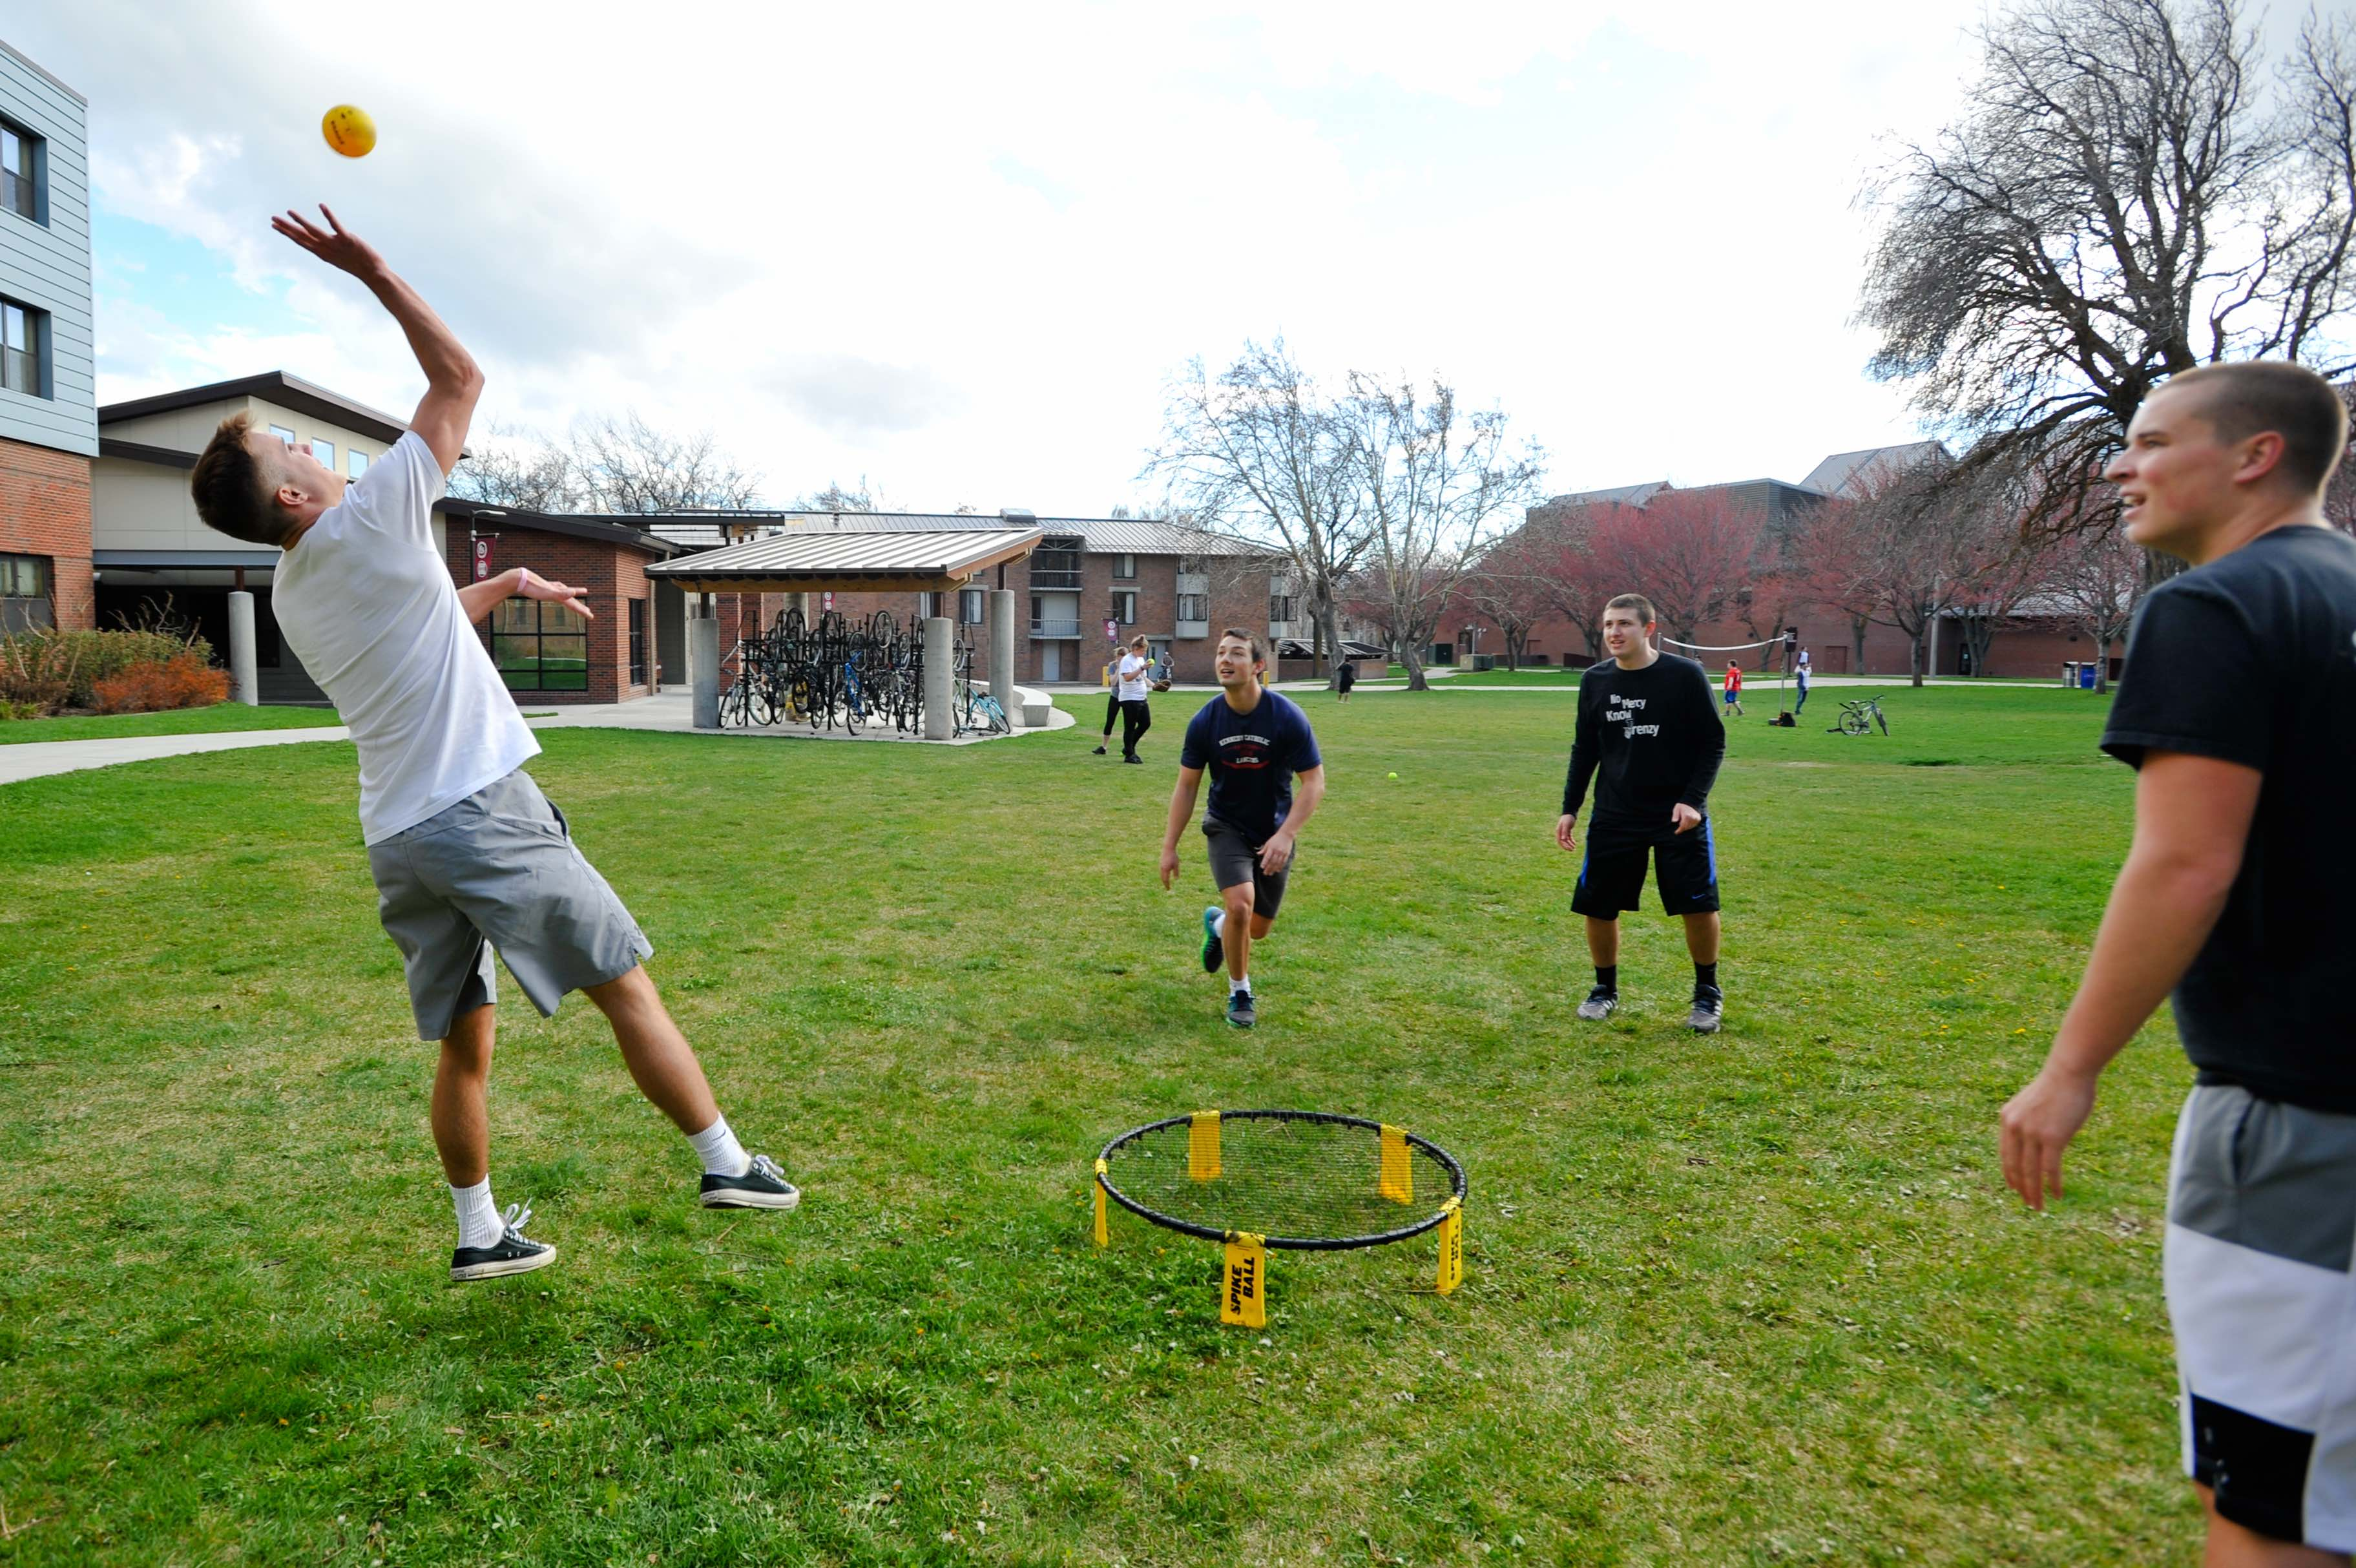 Barto residents partake in spikeball on a sunny spring day. Tuesday, April 18.  In the background, other students play volleyball with a net from OPR.